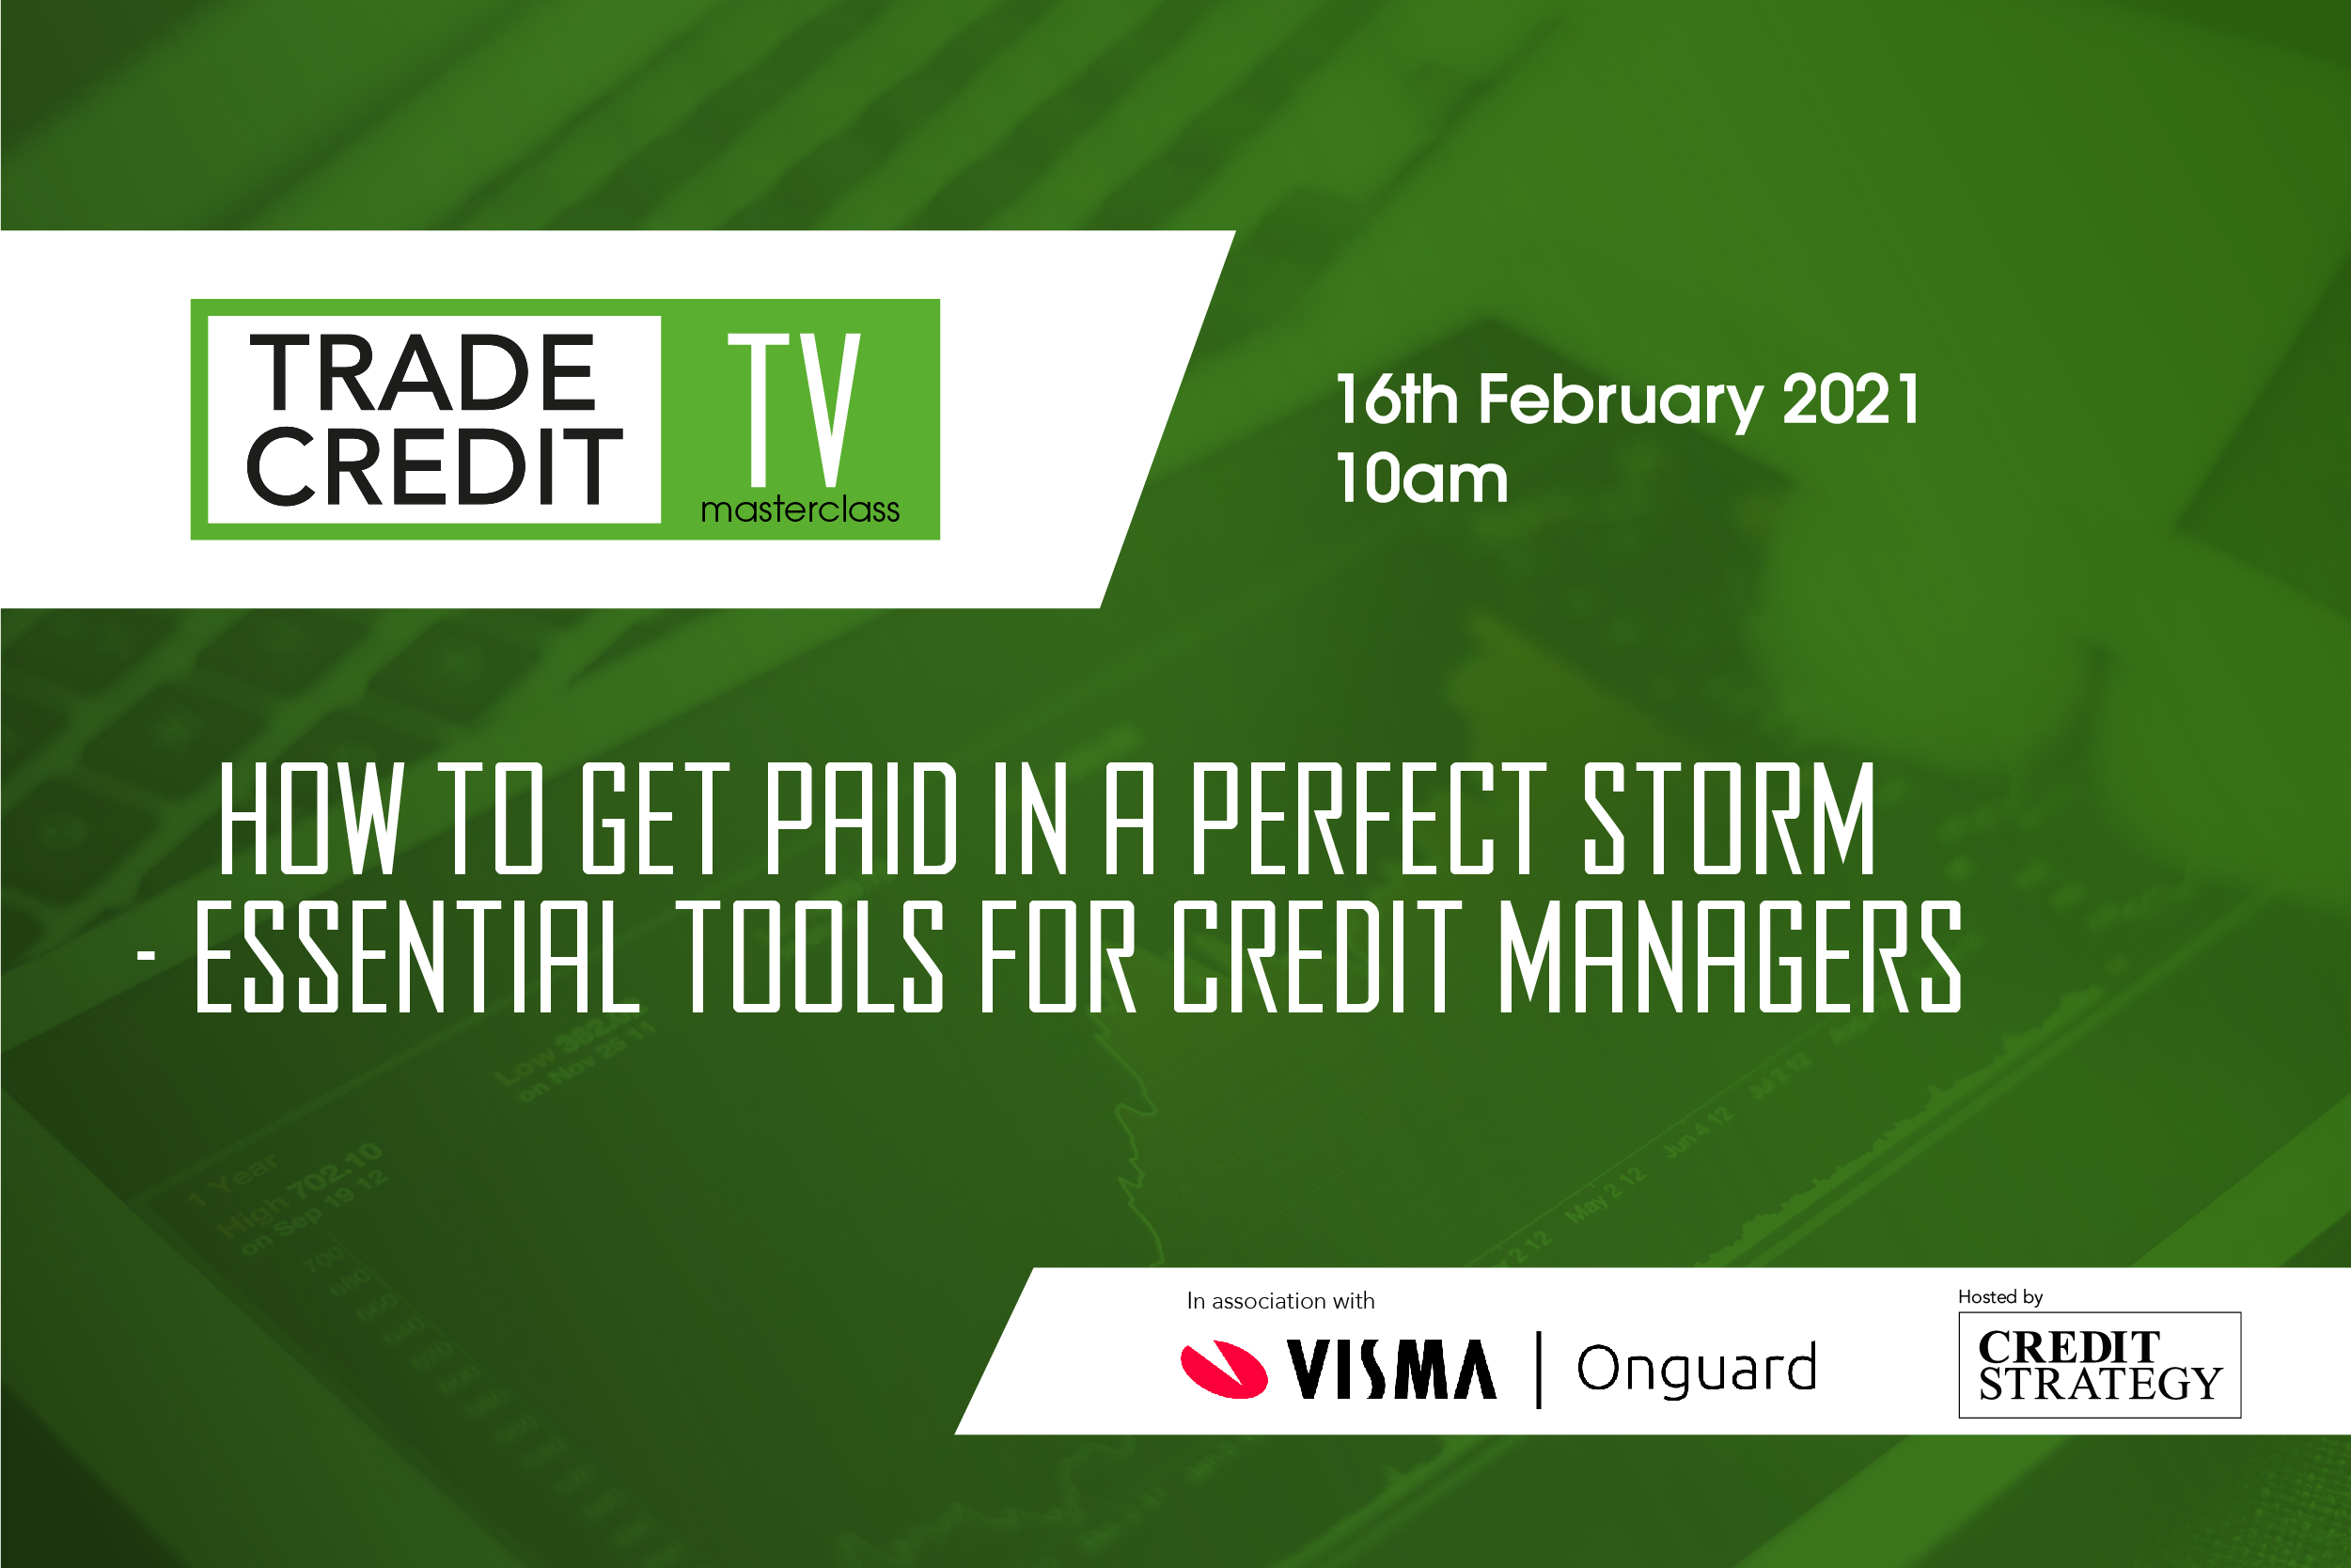 Trade Credit Masterclass - Episode 1 - How to get paid in a perfect storm - Essential tools for credit managers